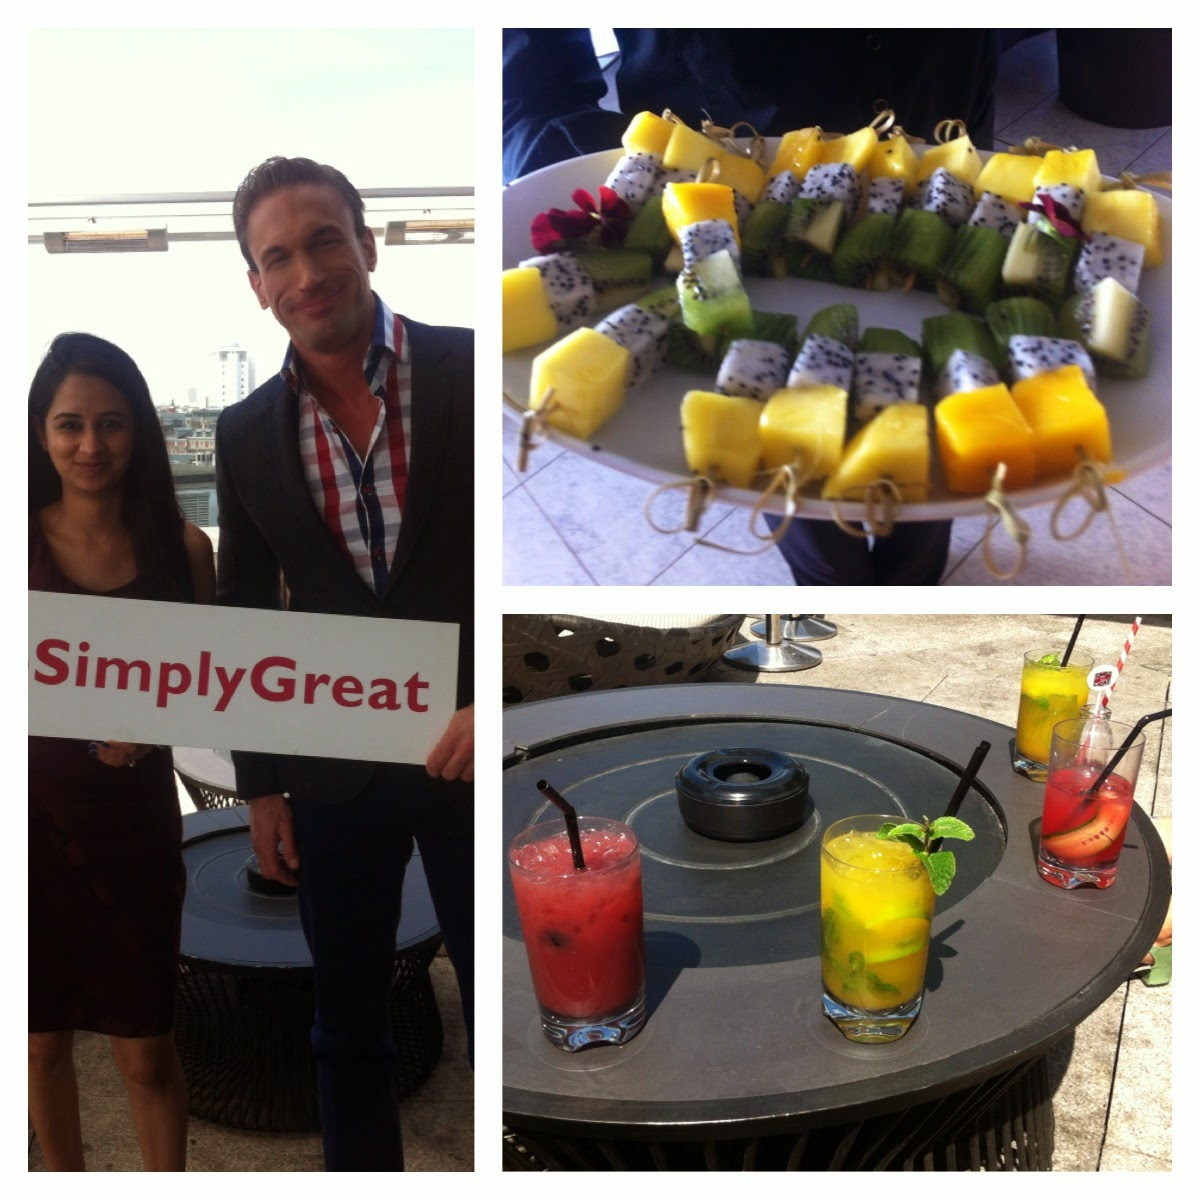 Simply Great Health and Lifestyle Campaign Launch, Dr.Christian Jessen